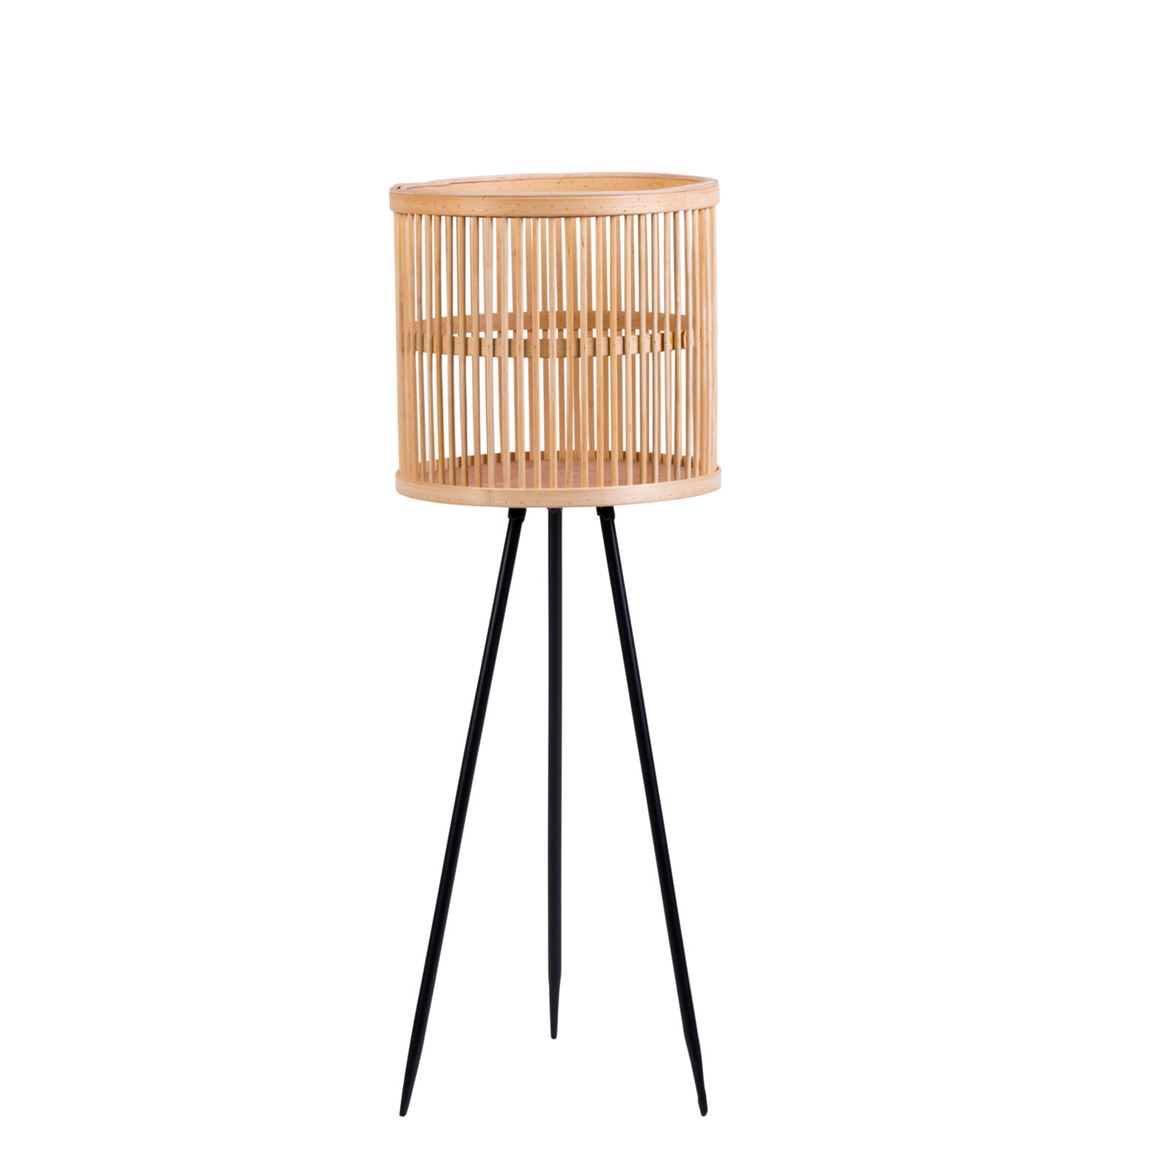 RATTAN Support sur pied naturel H 79 cm; Ø 27 cm_rattan-support-sur-pied-naturel-h-79-cm;-ø-27-cm